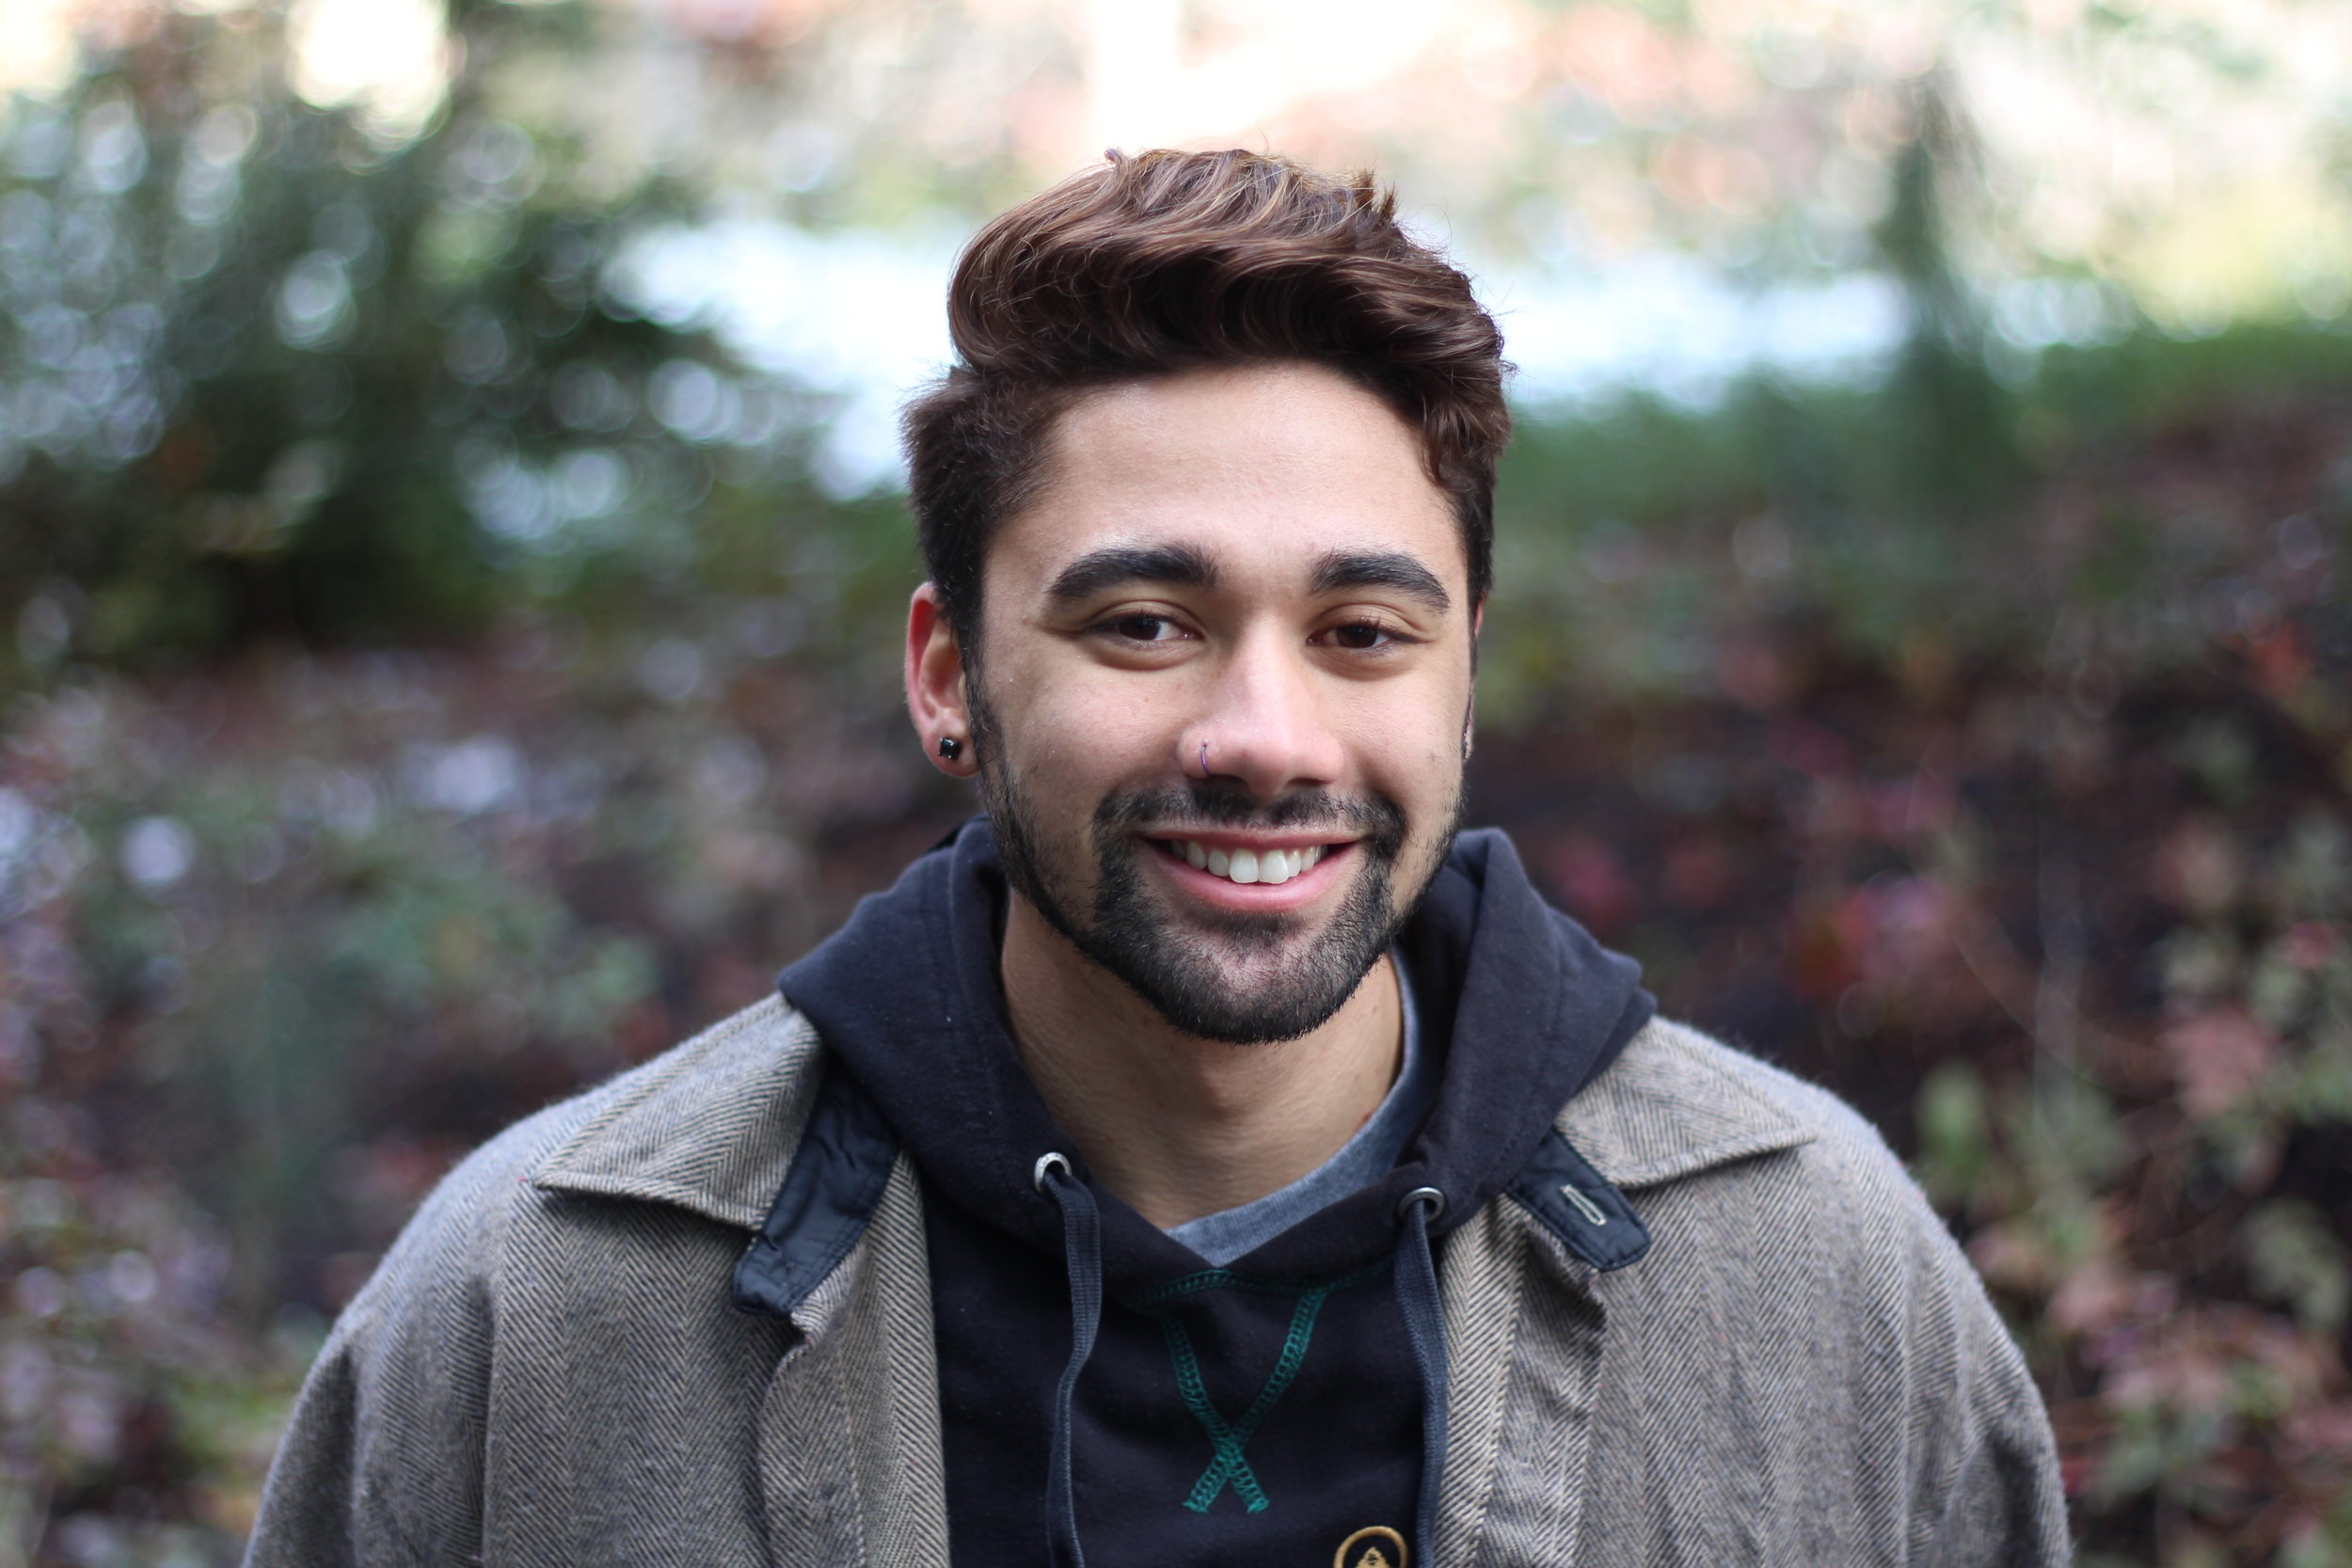 Chris Rosero - Soon leaving to go to school at SOU, Chris Rosero was shocked as the Carr Fire hit Redding this past summer. Rosero describes his emotions and thoughts of leaving his hometown, and how he felt being away from his family in college soon after.